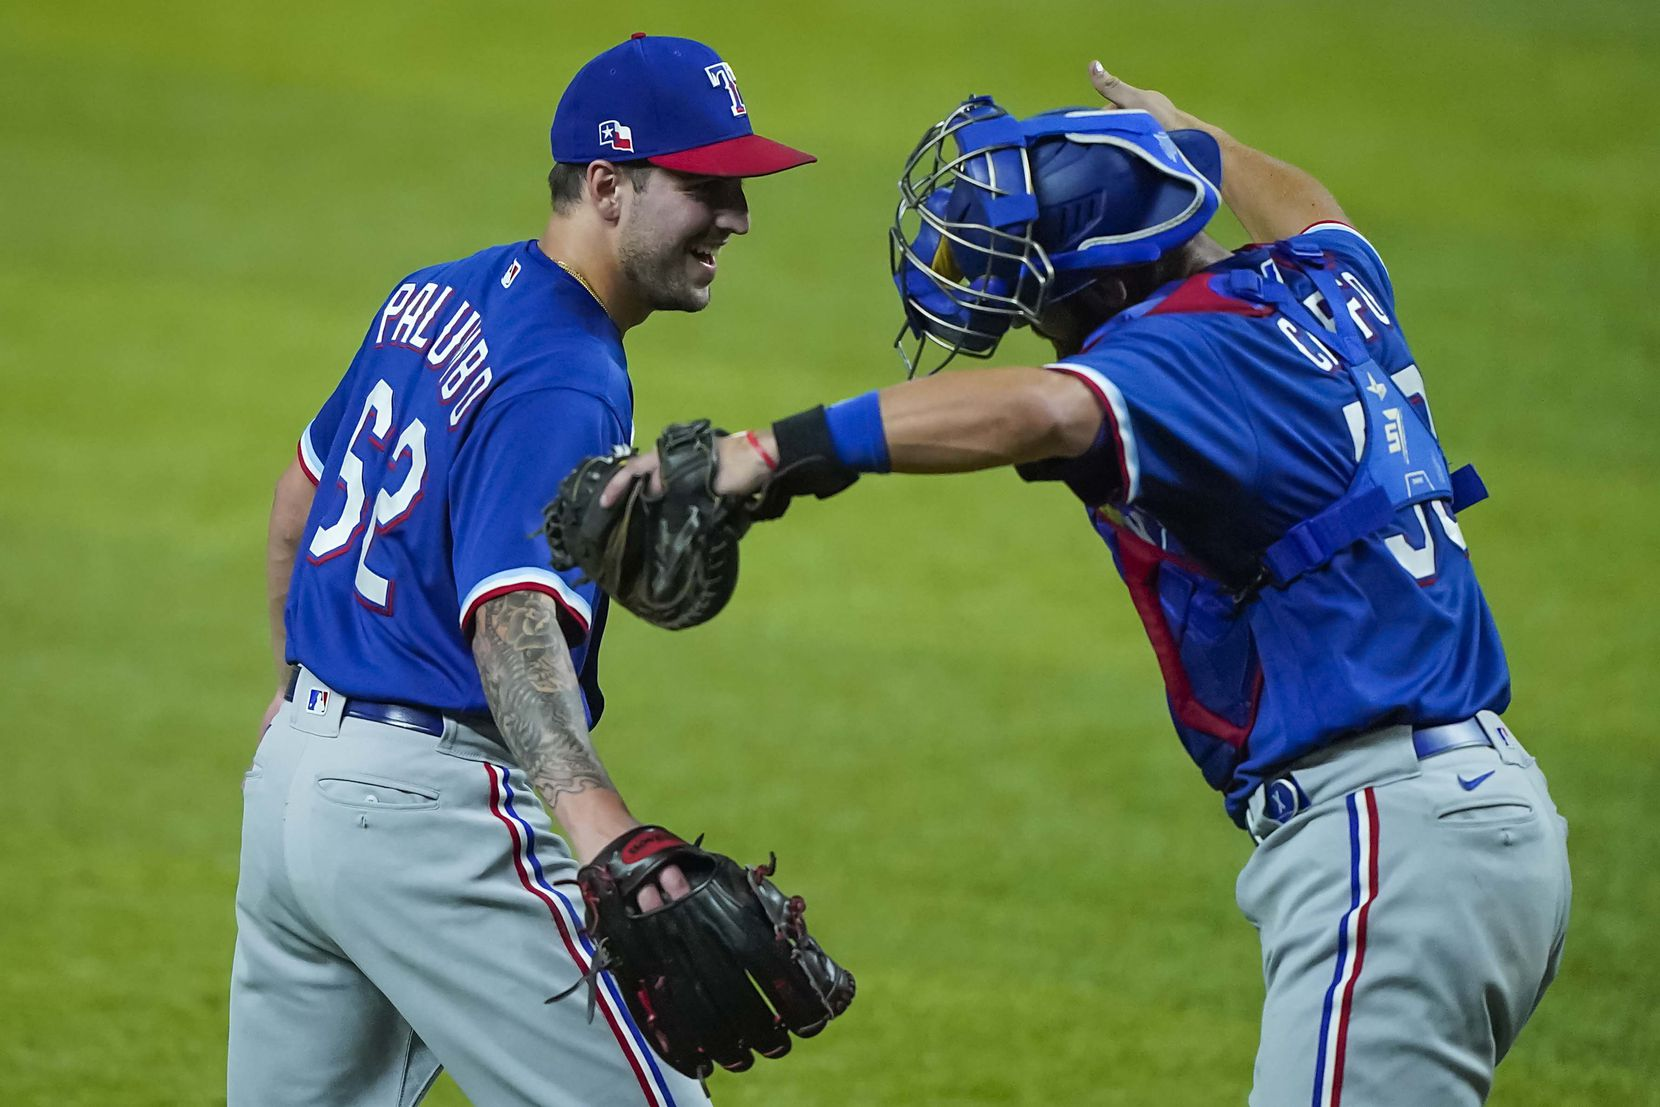 Pitcher Joe Palumbo playfully gets a distanced hug from catcher Nick Ciuffo after recording the final out in an intrasquad game during Texas Rangers Summer Camp at Globe Life Field on Thursday, July 16, 2020.